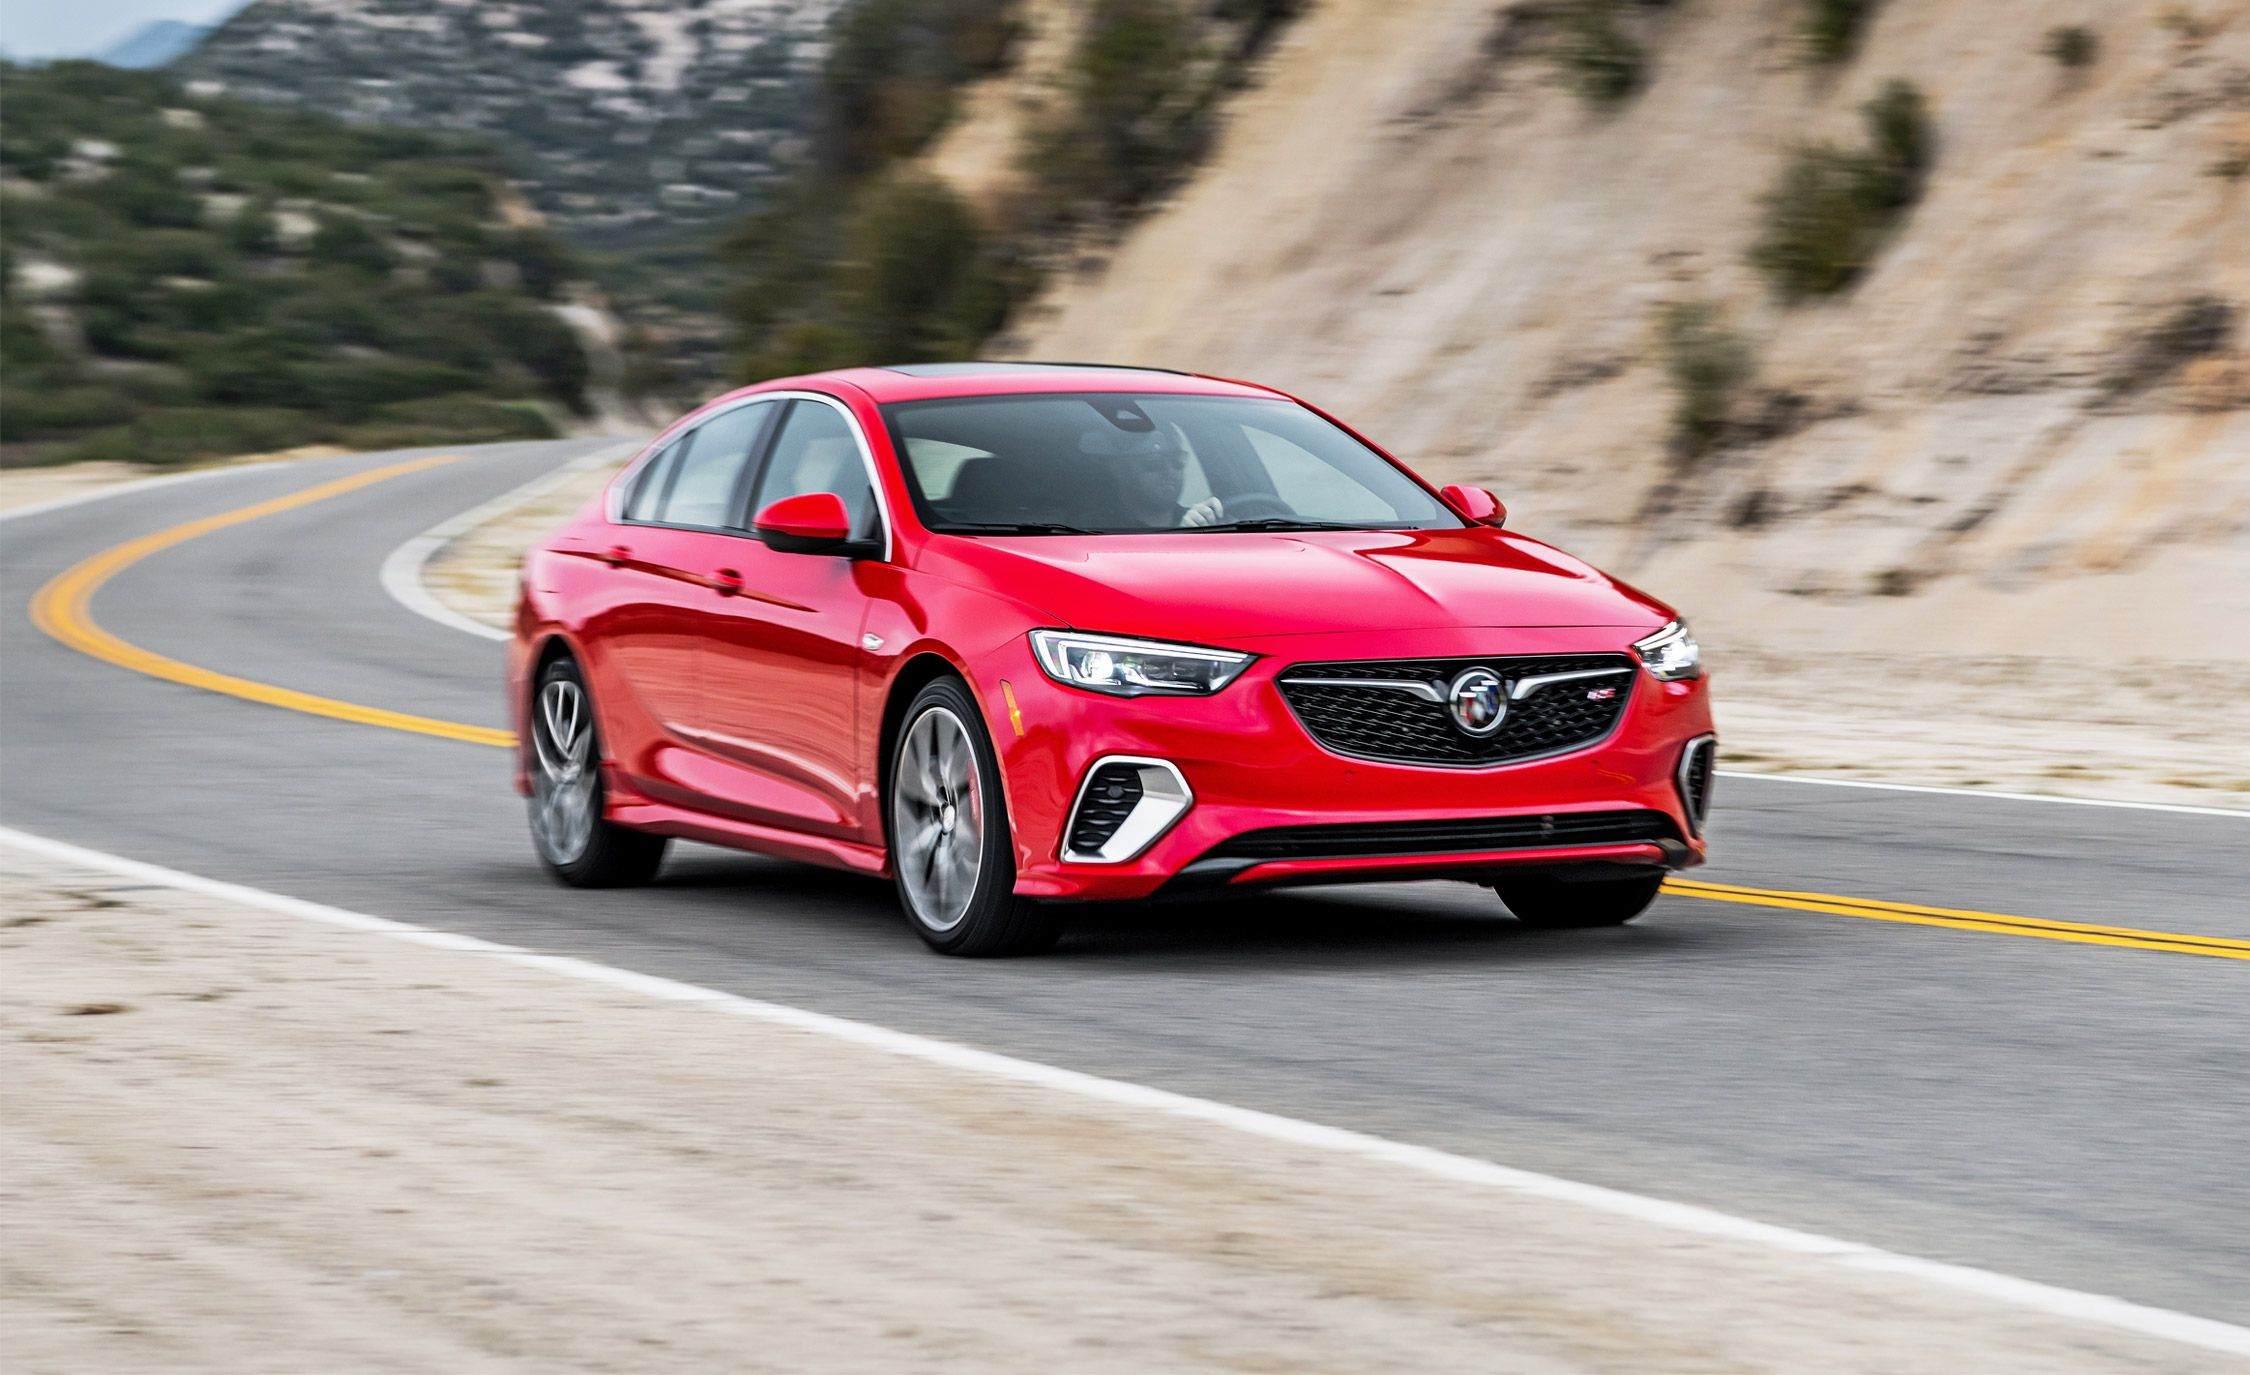 Glasregal 40 X 20 2018 Buick Regal Gs Test Well Executed But Not Particularly